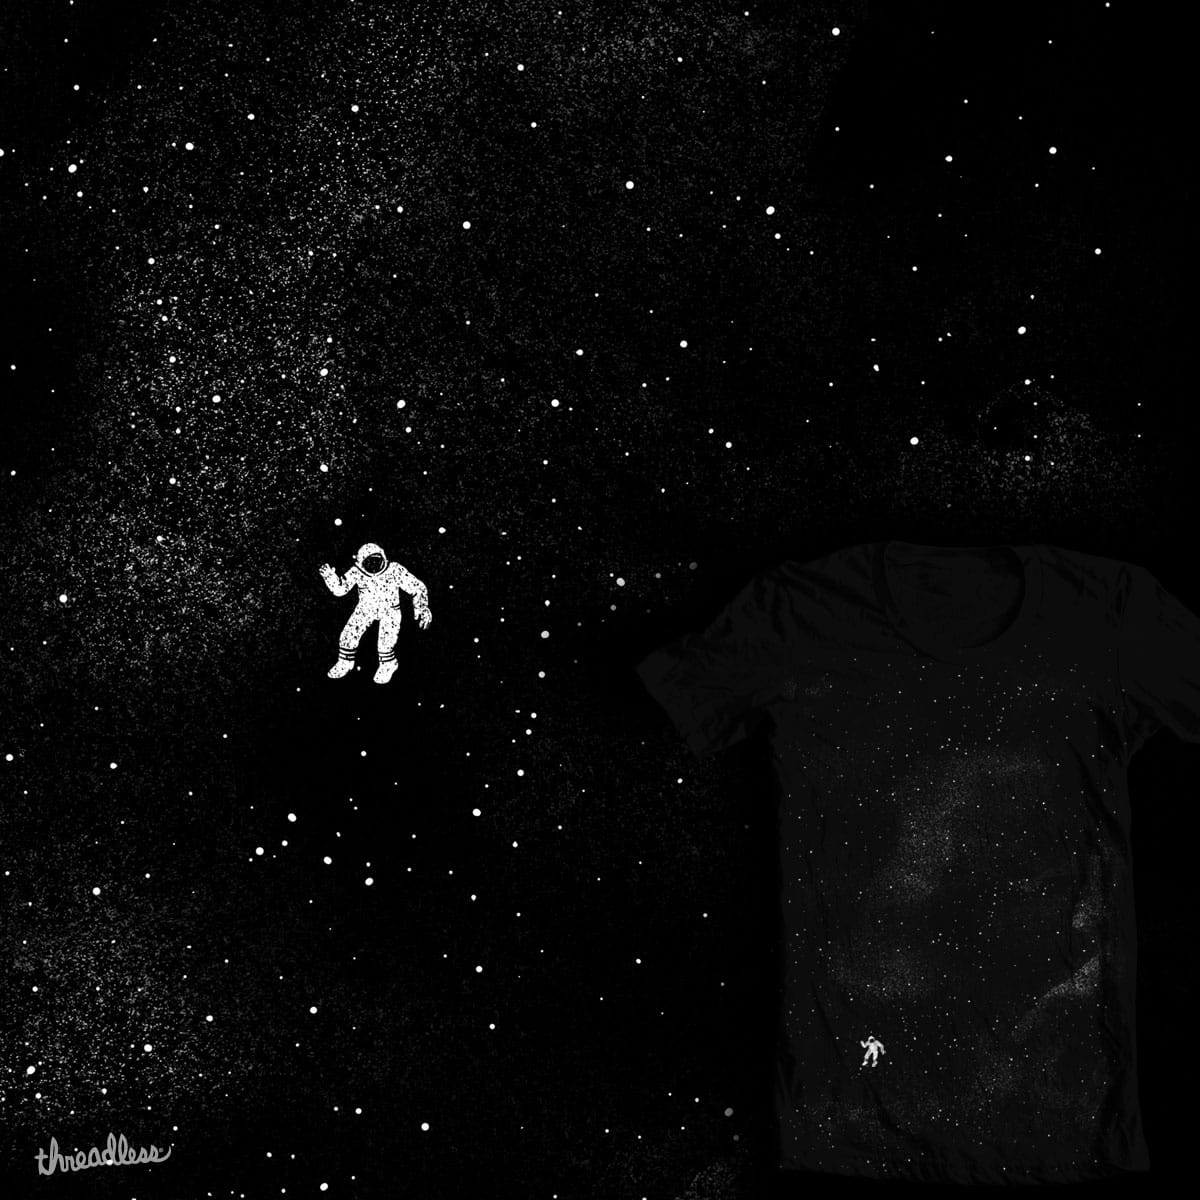 Gravity by tobiasfonseca on Threadless